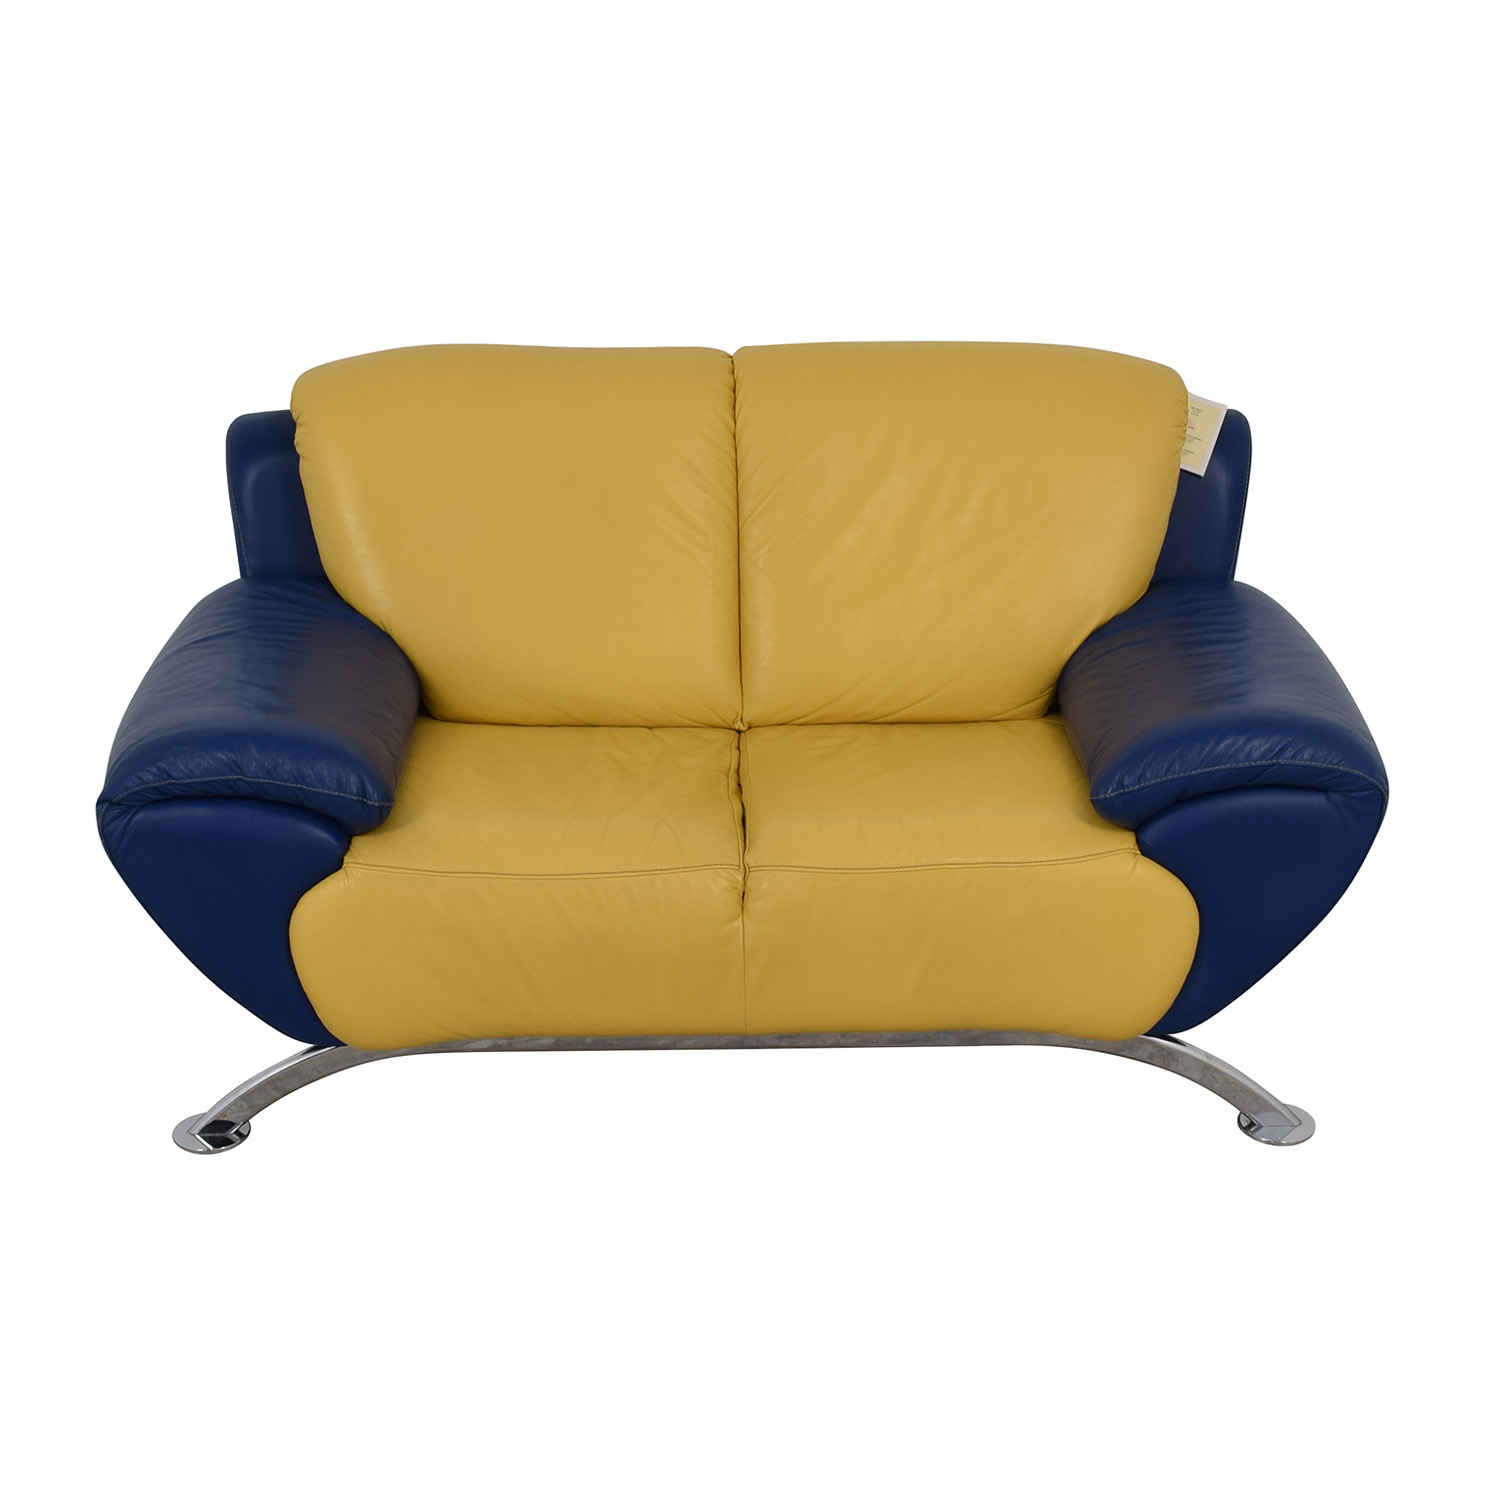 Satis Modern Yellow and Blue Leather Loveseat / Sofas